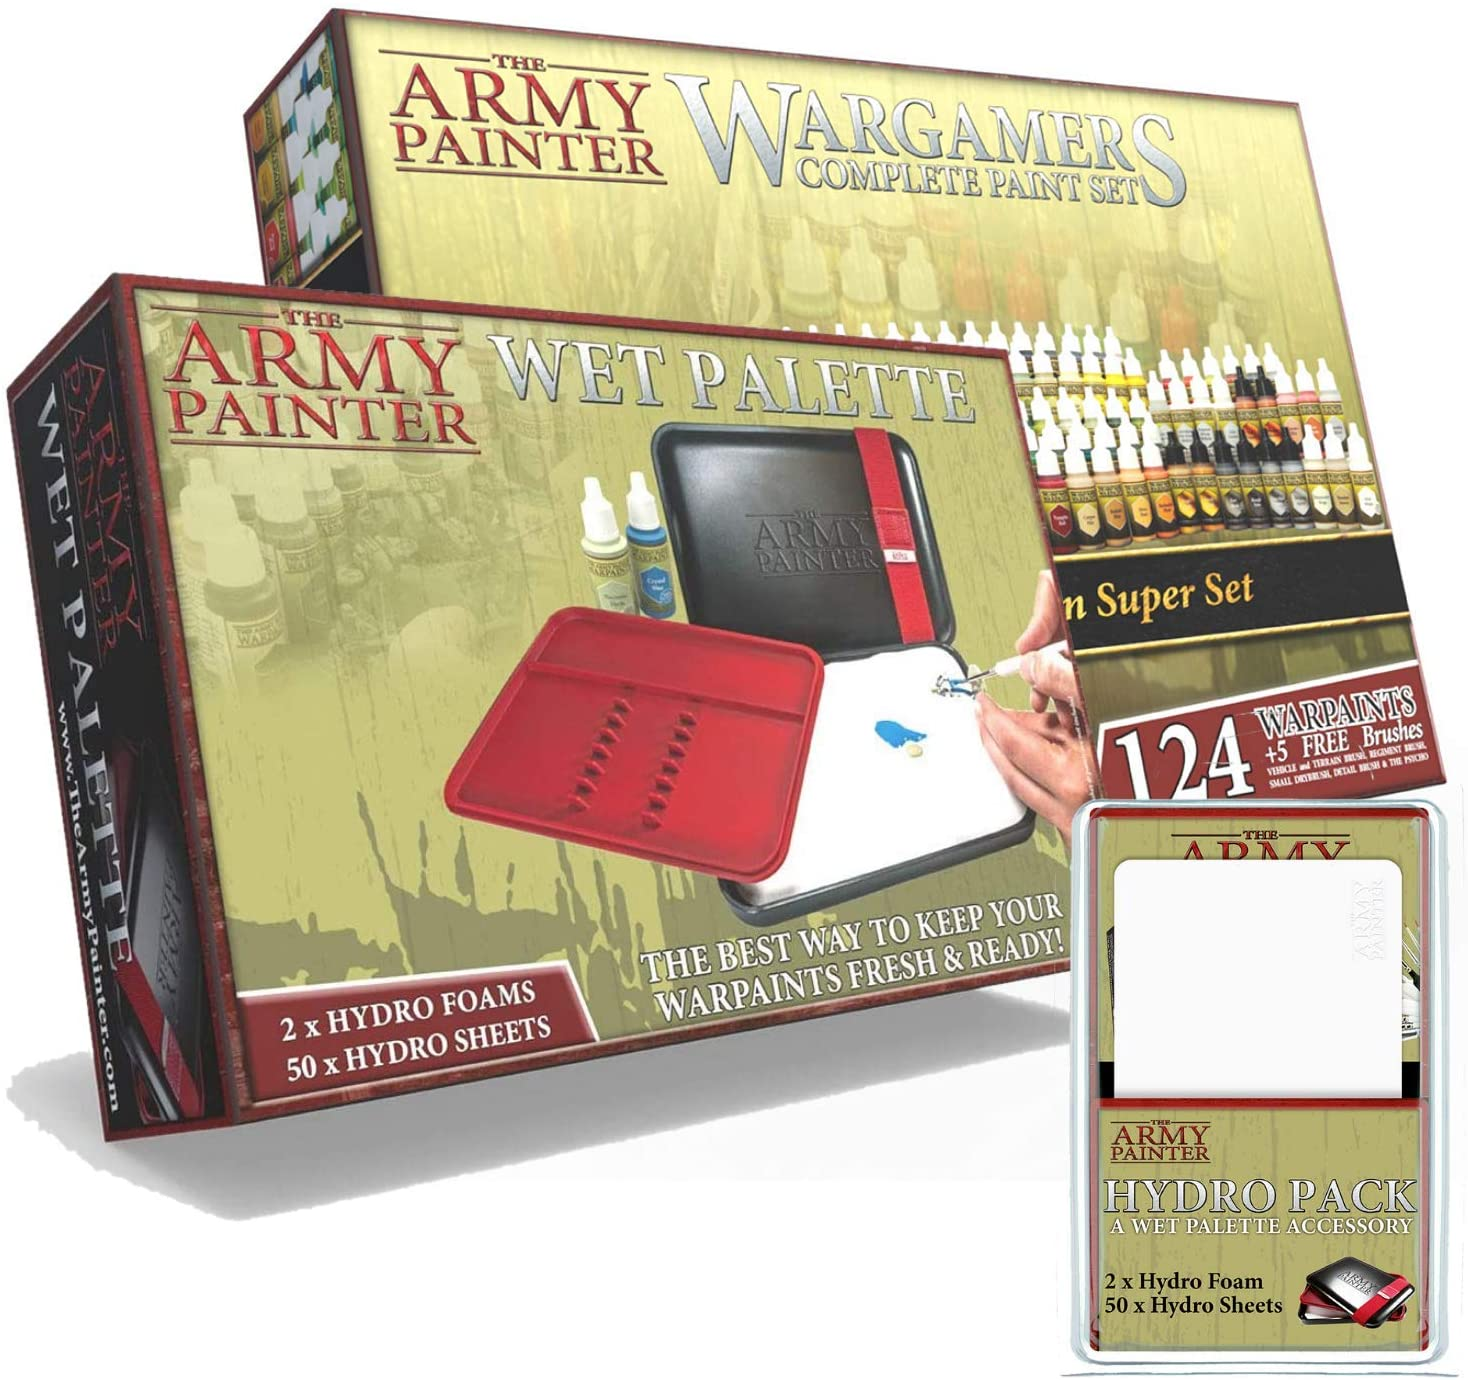 The Army Painter Complete Paint Set - Wet Palette - Hydro Pack Bundle: Miniatures Painting Kit with 124 Model Paints, 5 Bonus Miniatures Paint Brushes, Wet Palette and Complete Refill Package